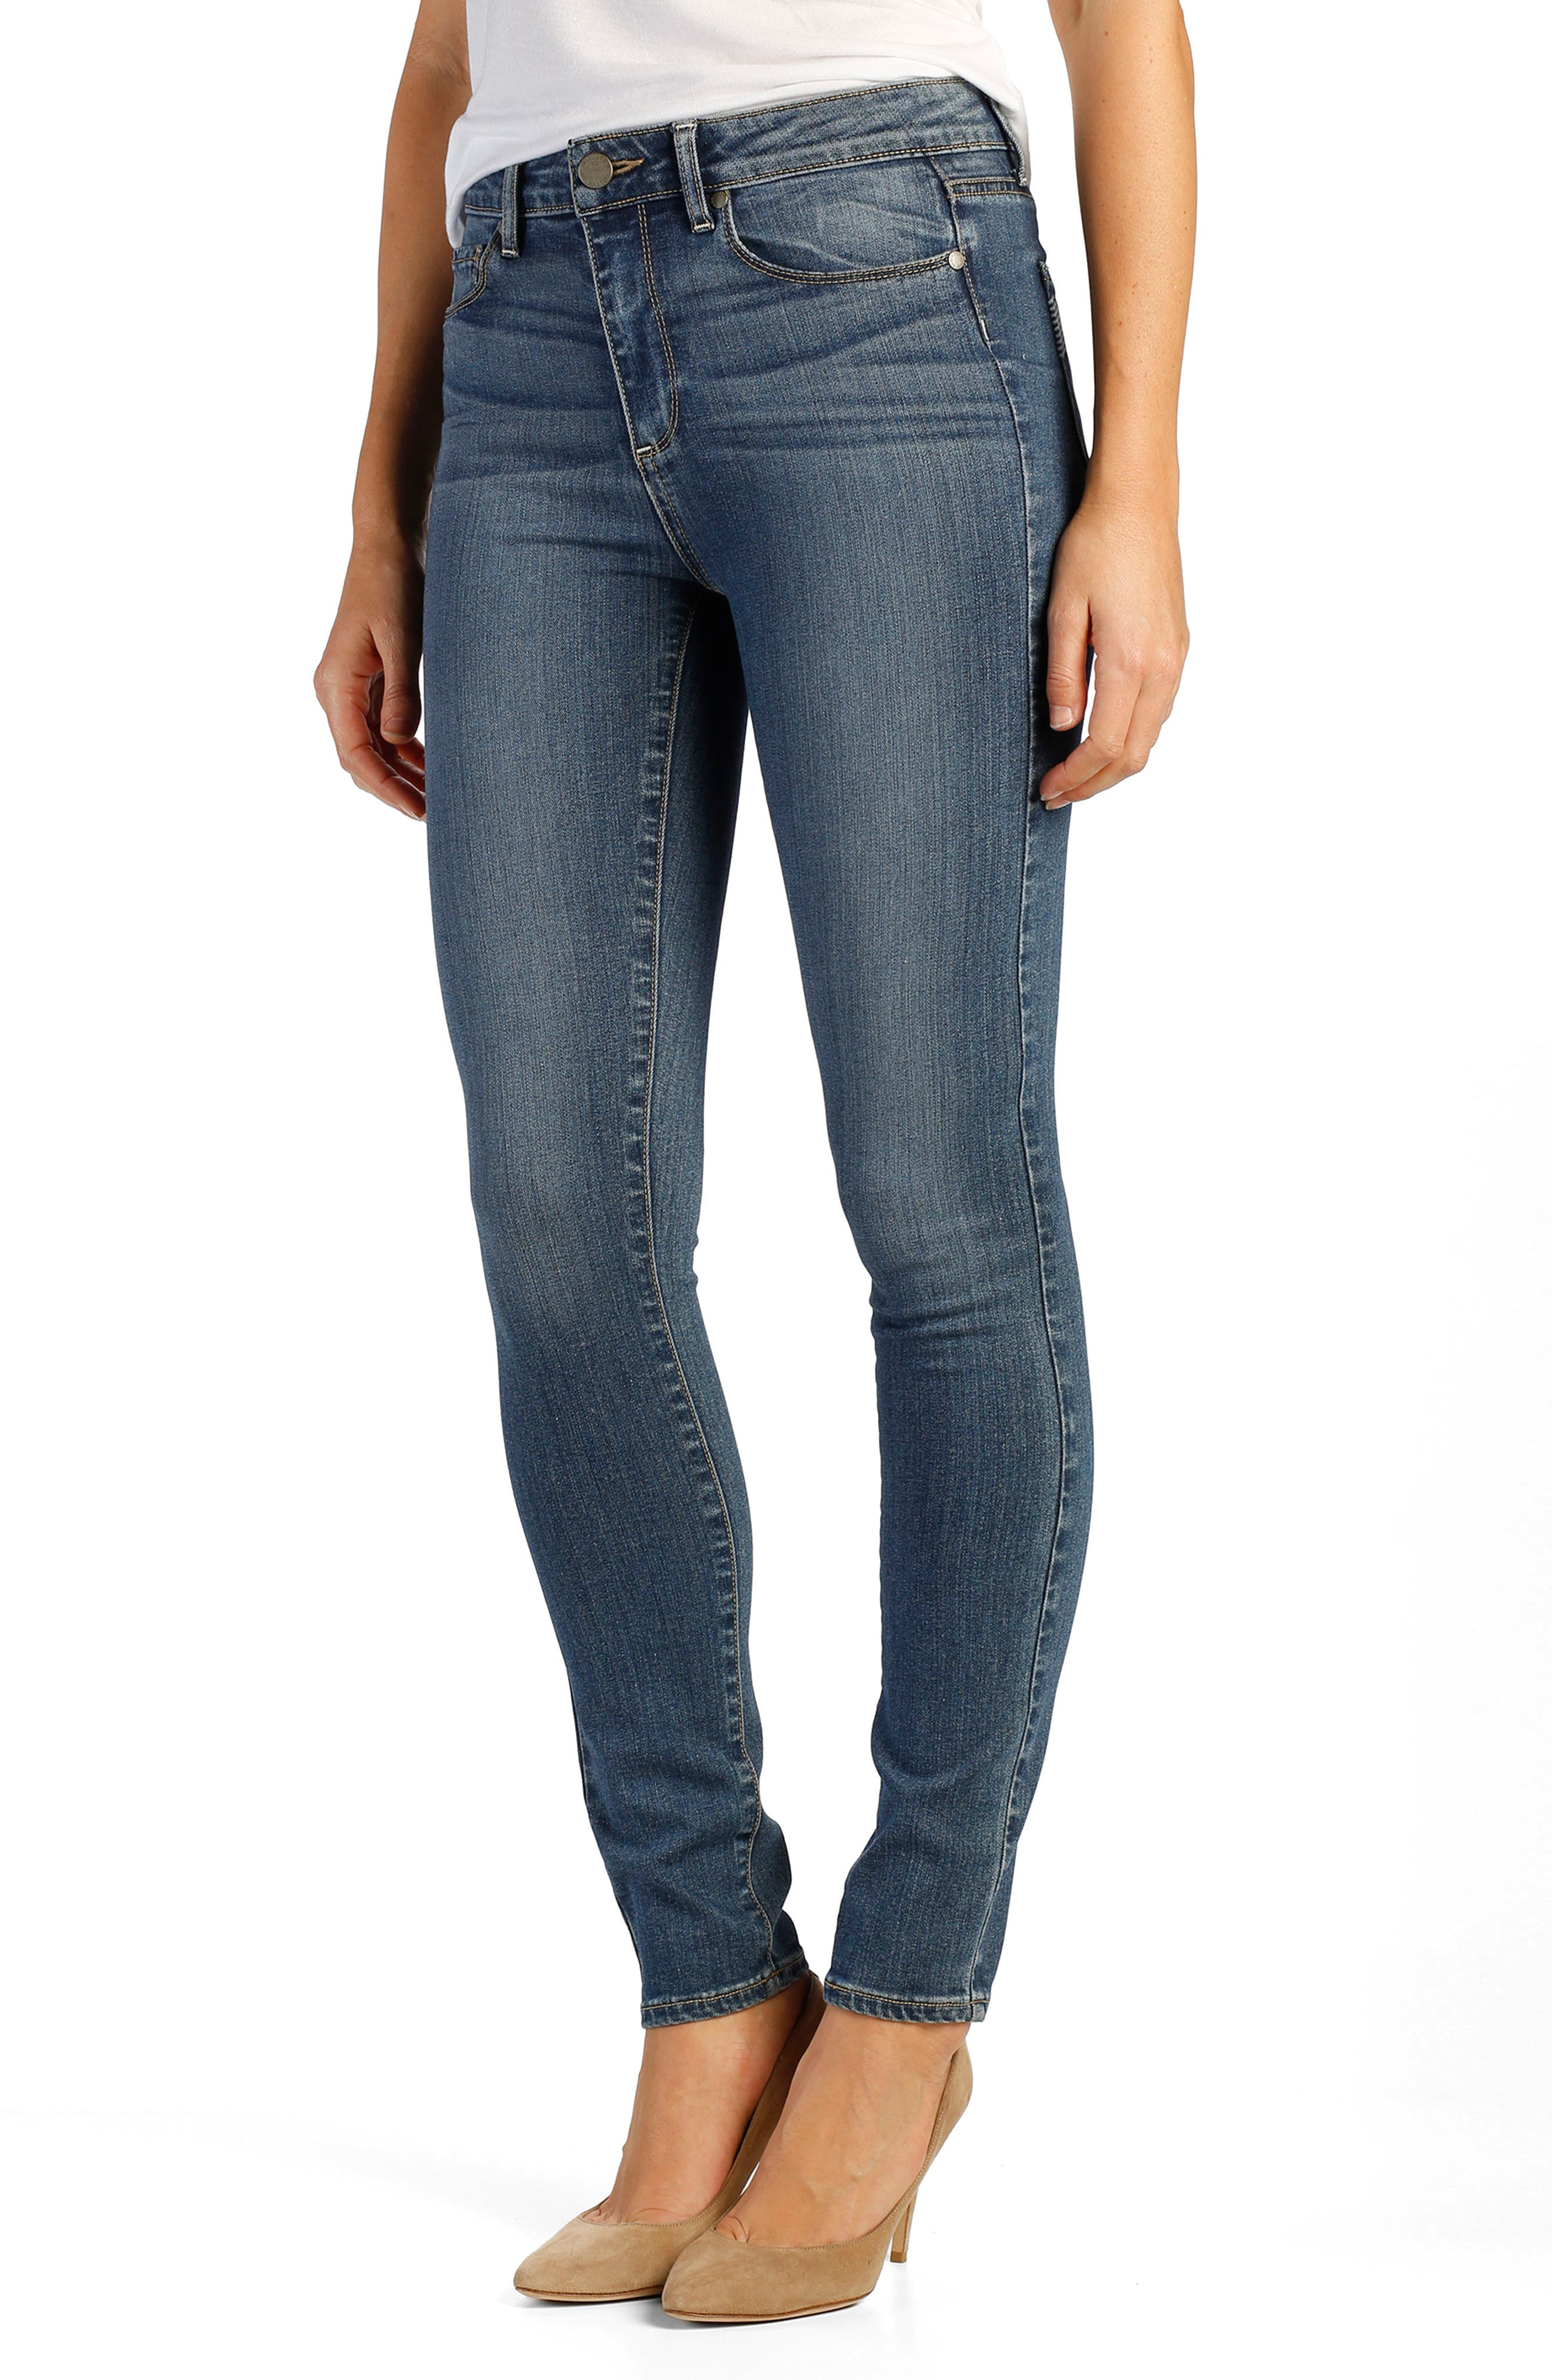 PAIGE Transcend - Hoxton High Rise Ultra Skinny